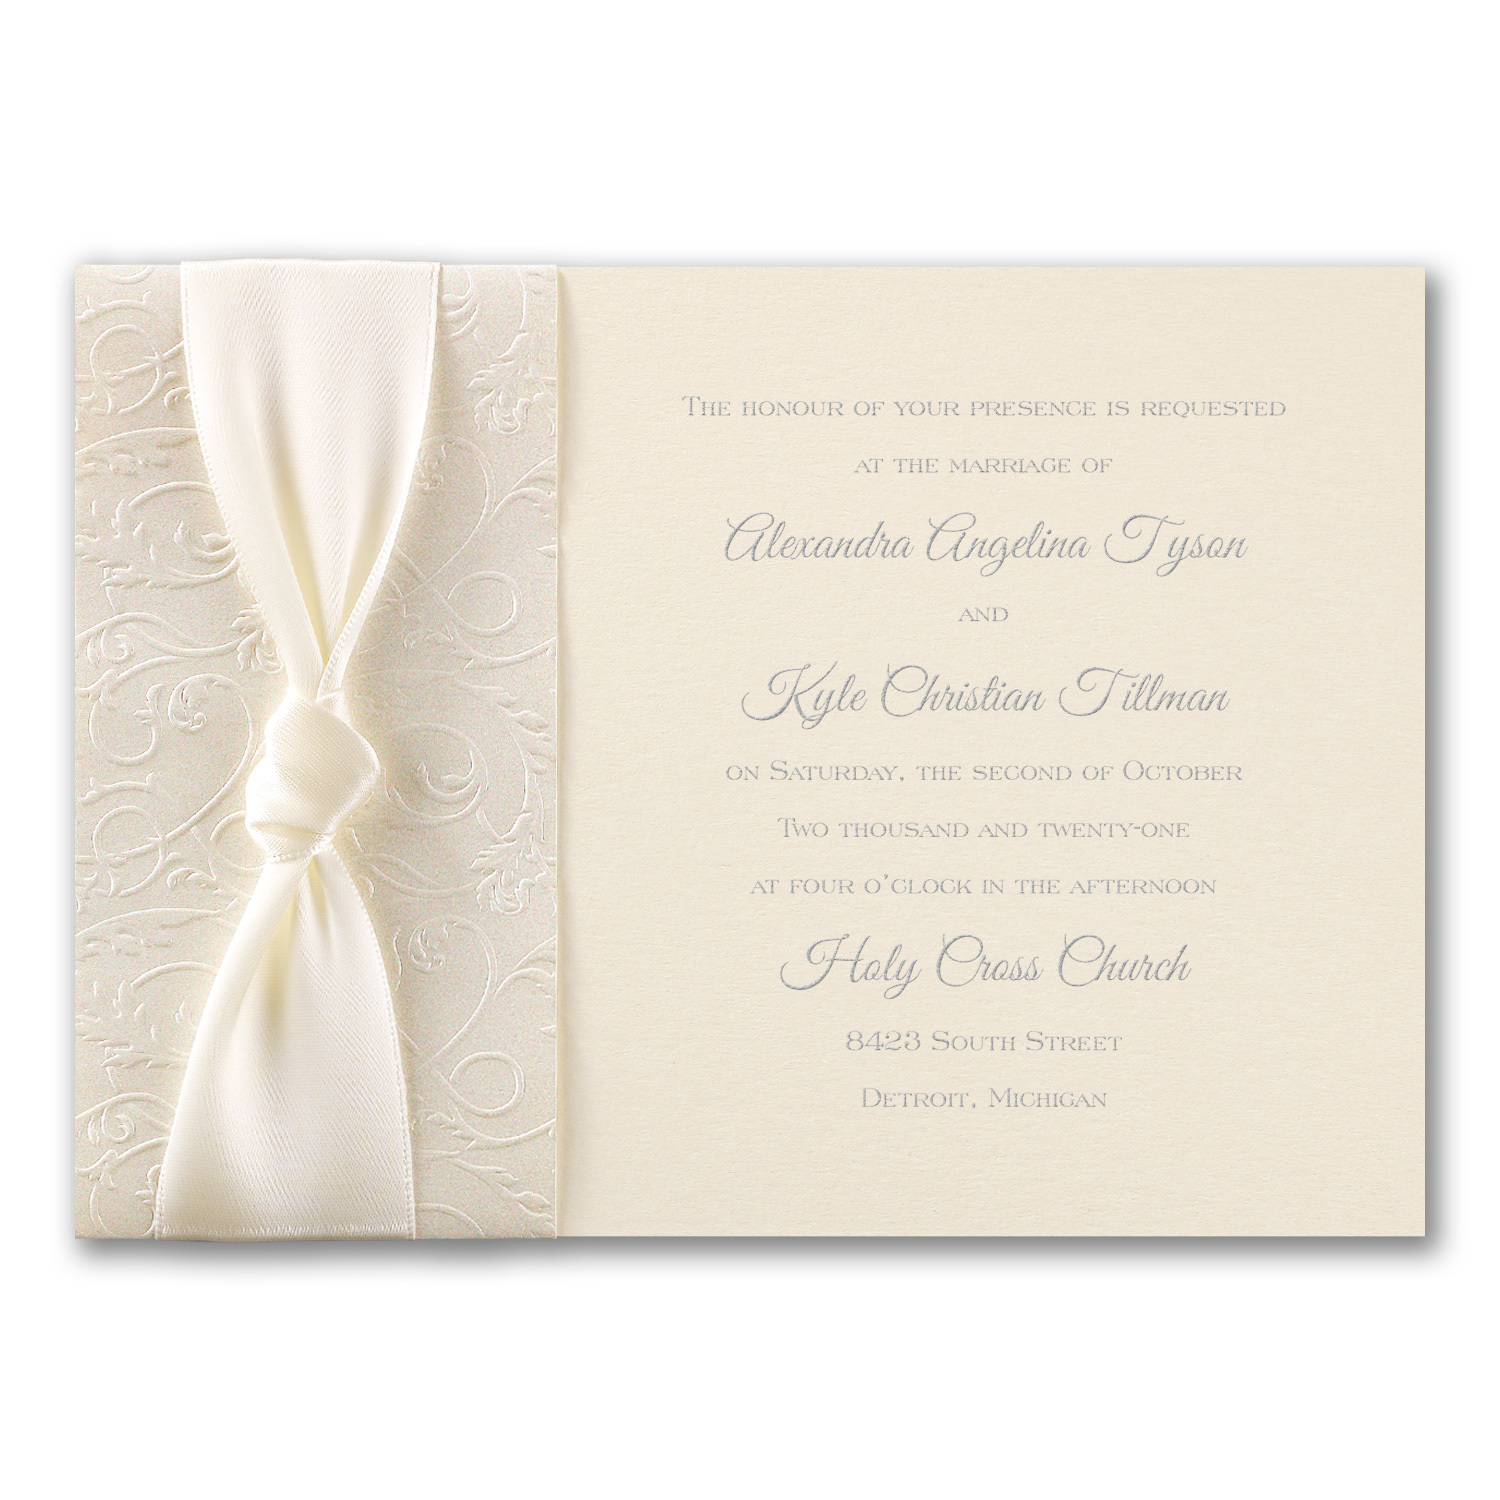 Invitations and Stationary   Memorable Moments